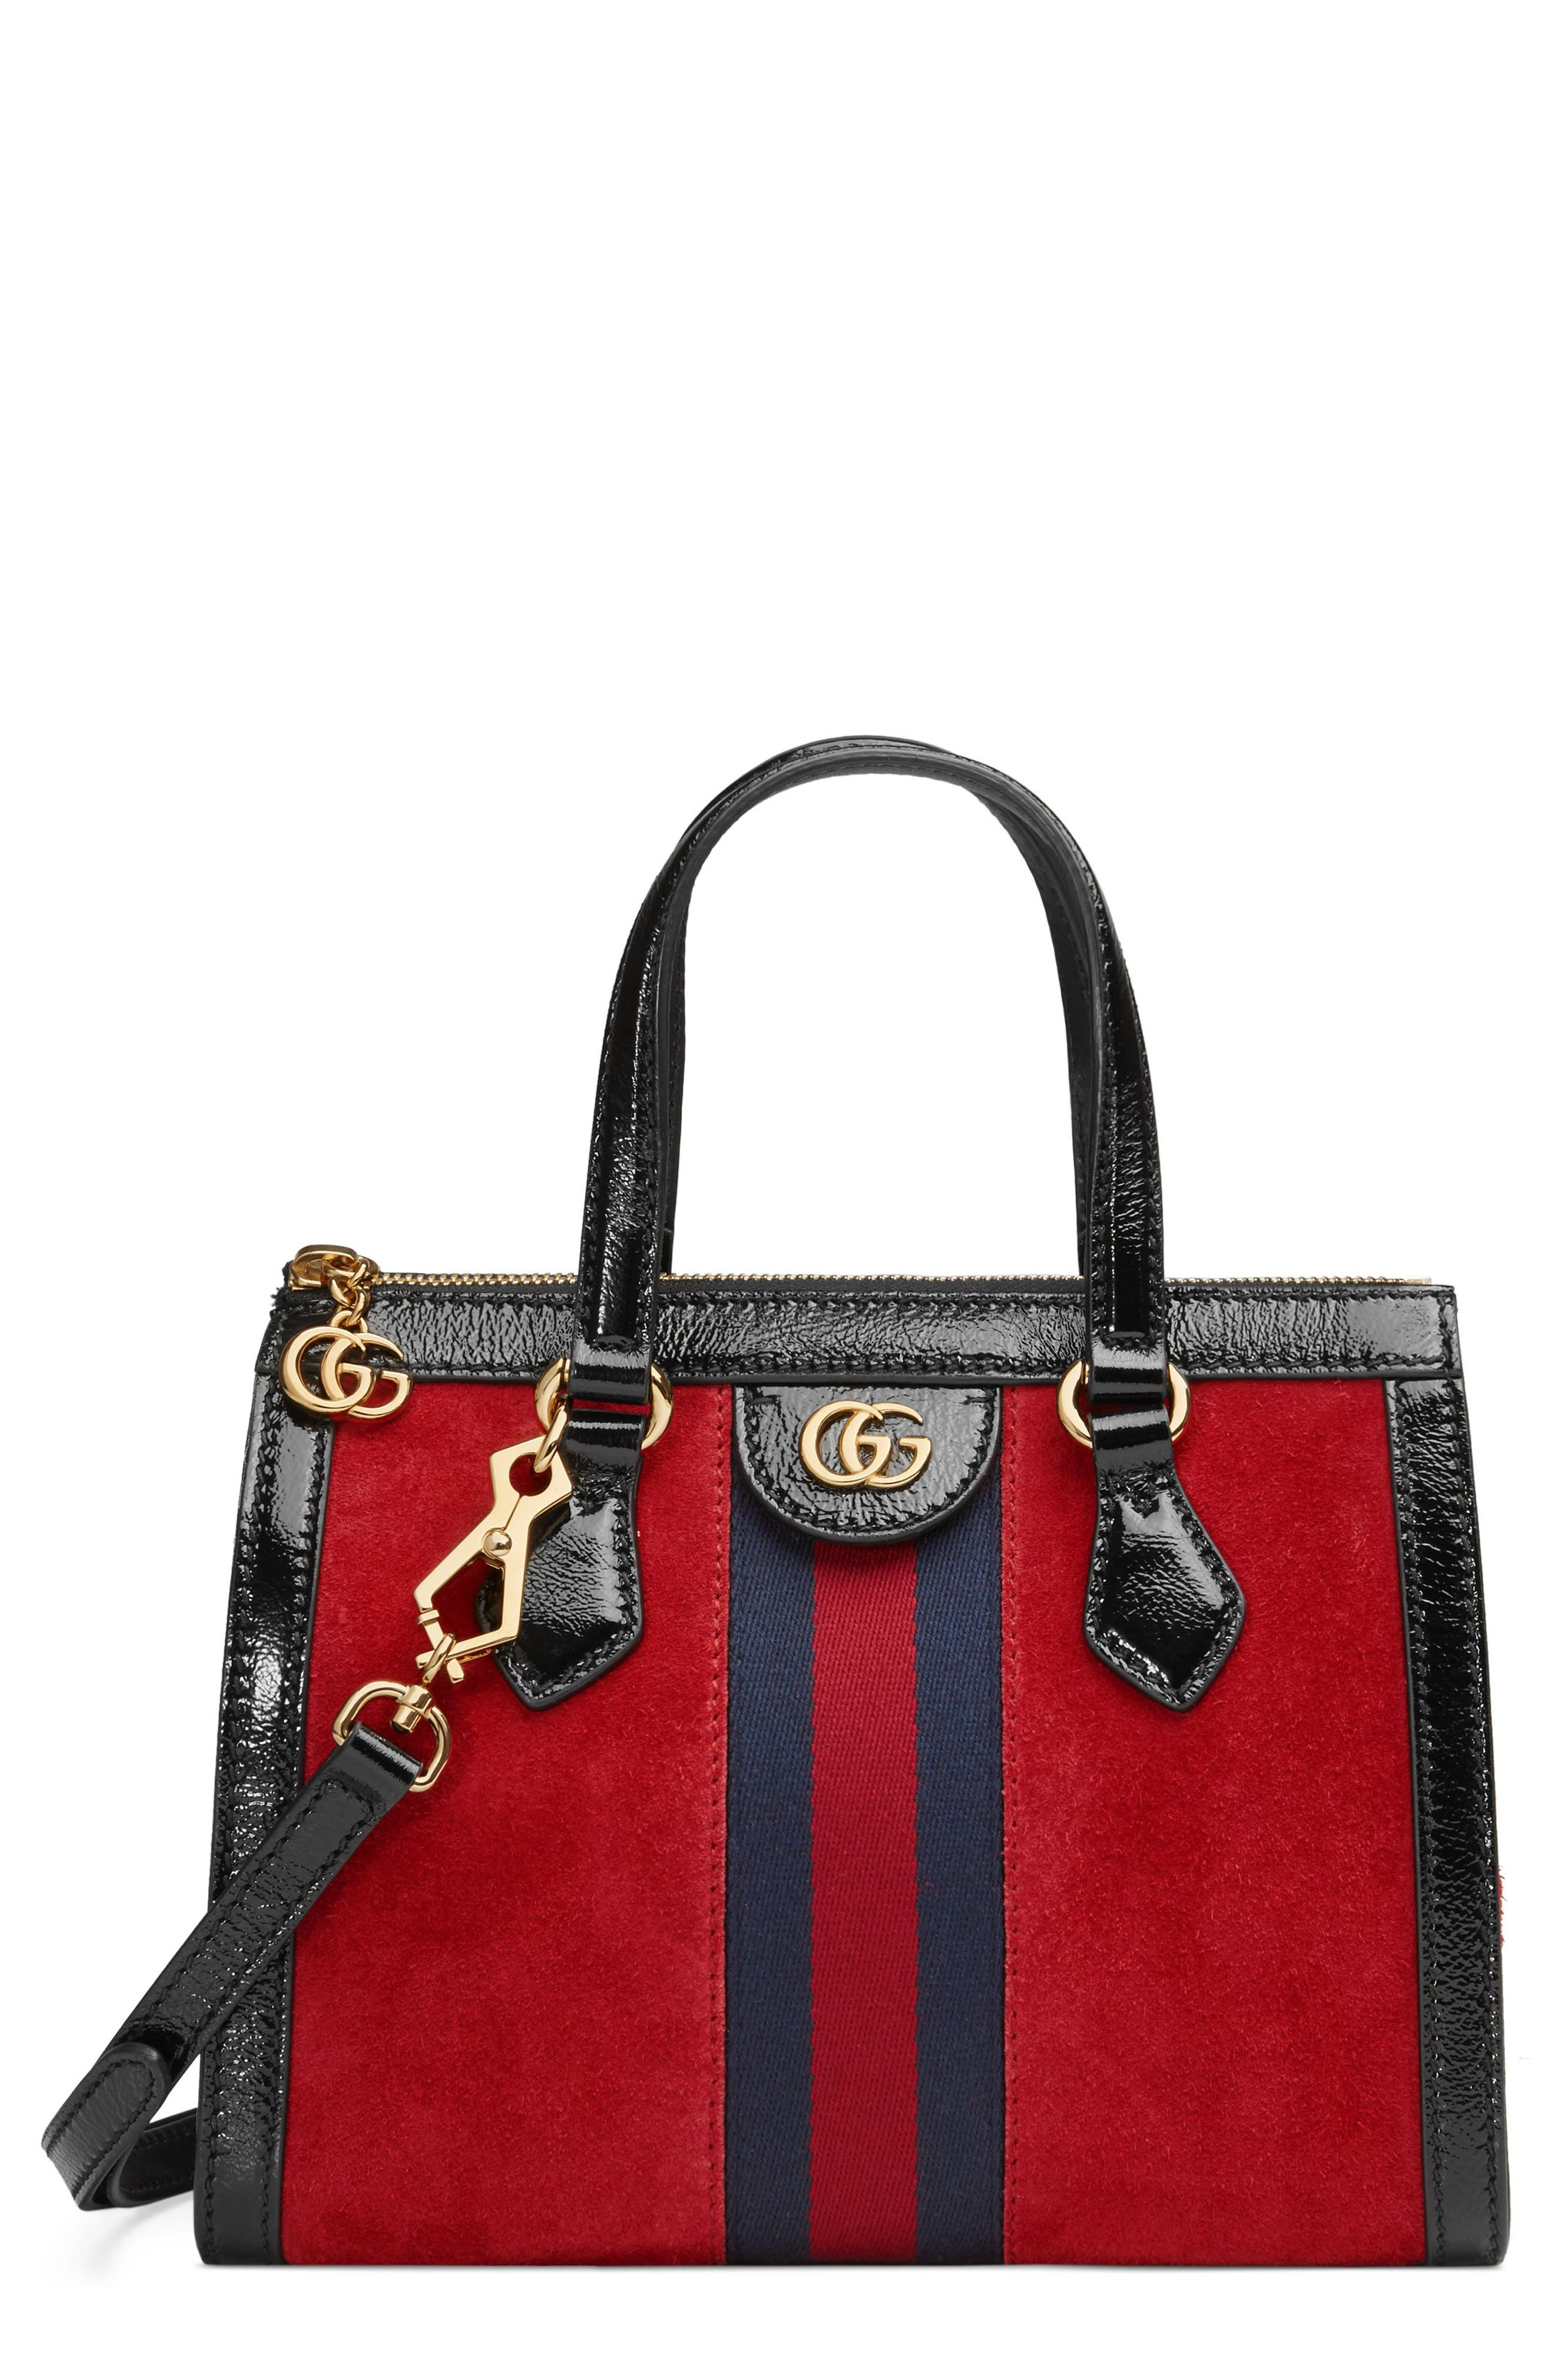 Small Ophidia House Web Suede Satchel - Red in Hibiscus Red/ Nero/ Blue